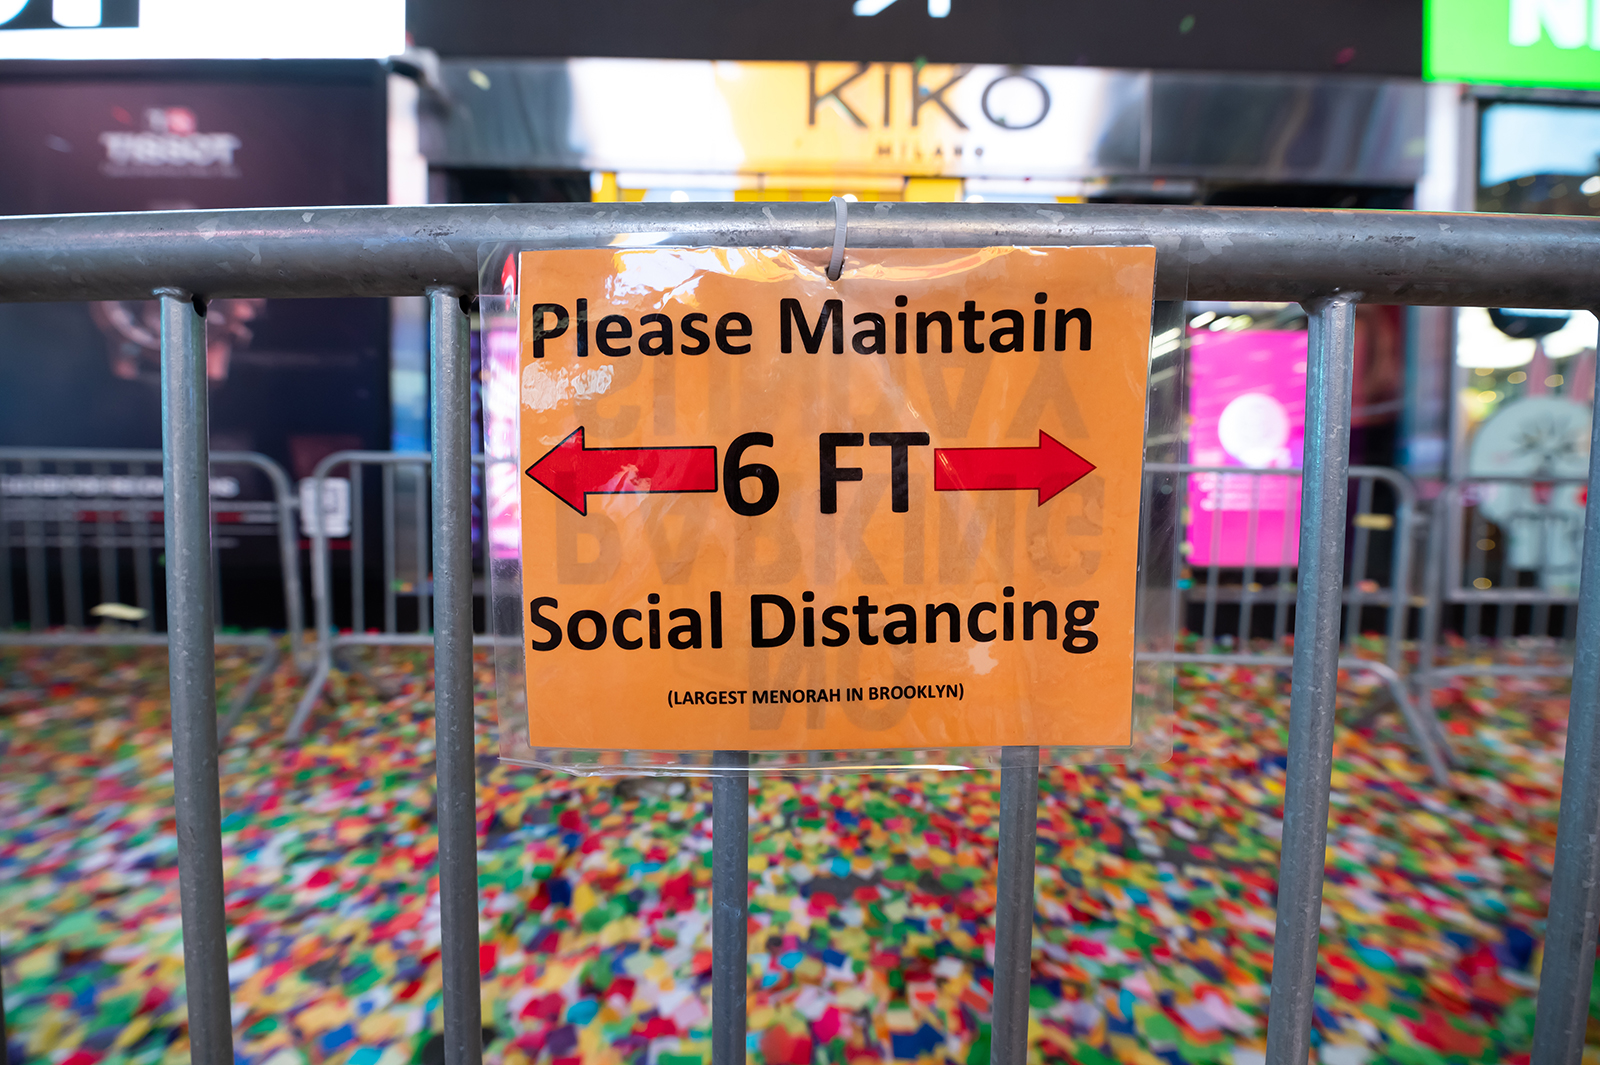 A social distancing sign is seen during the 2021 New Year's Eve celebration in Times Square New York City, on December 31, 2020.